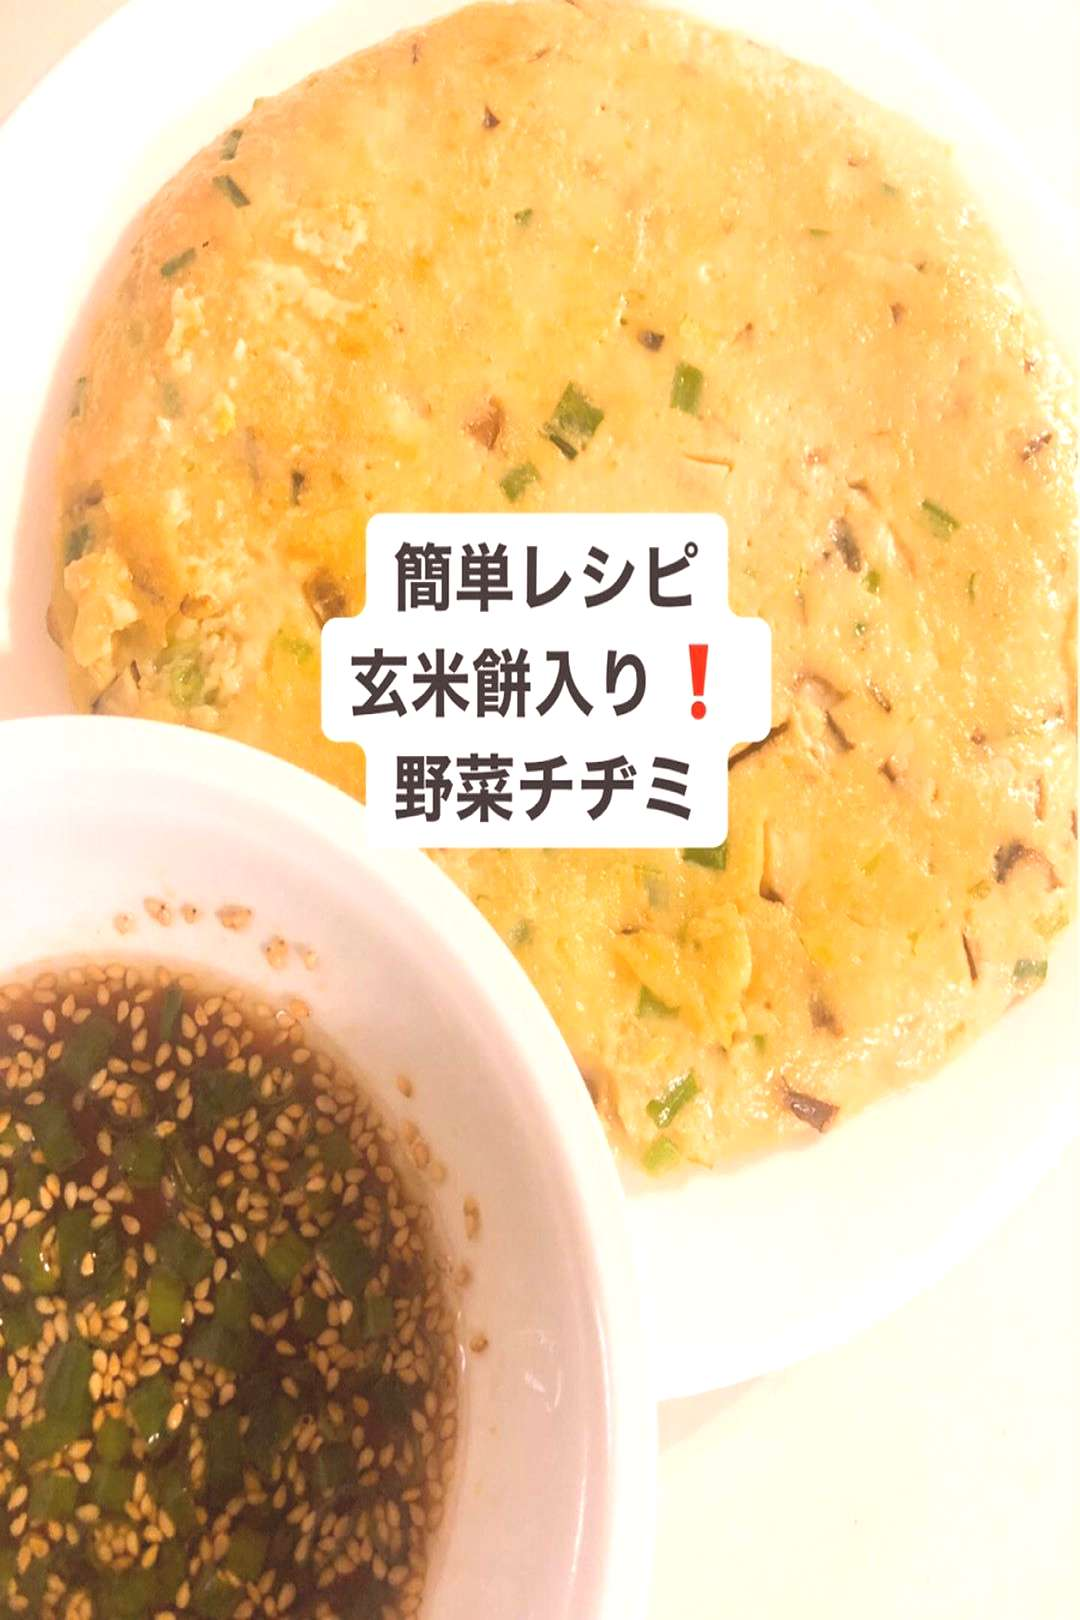 food, text that says '簡単レシピ 玄米